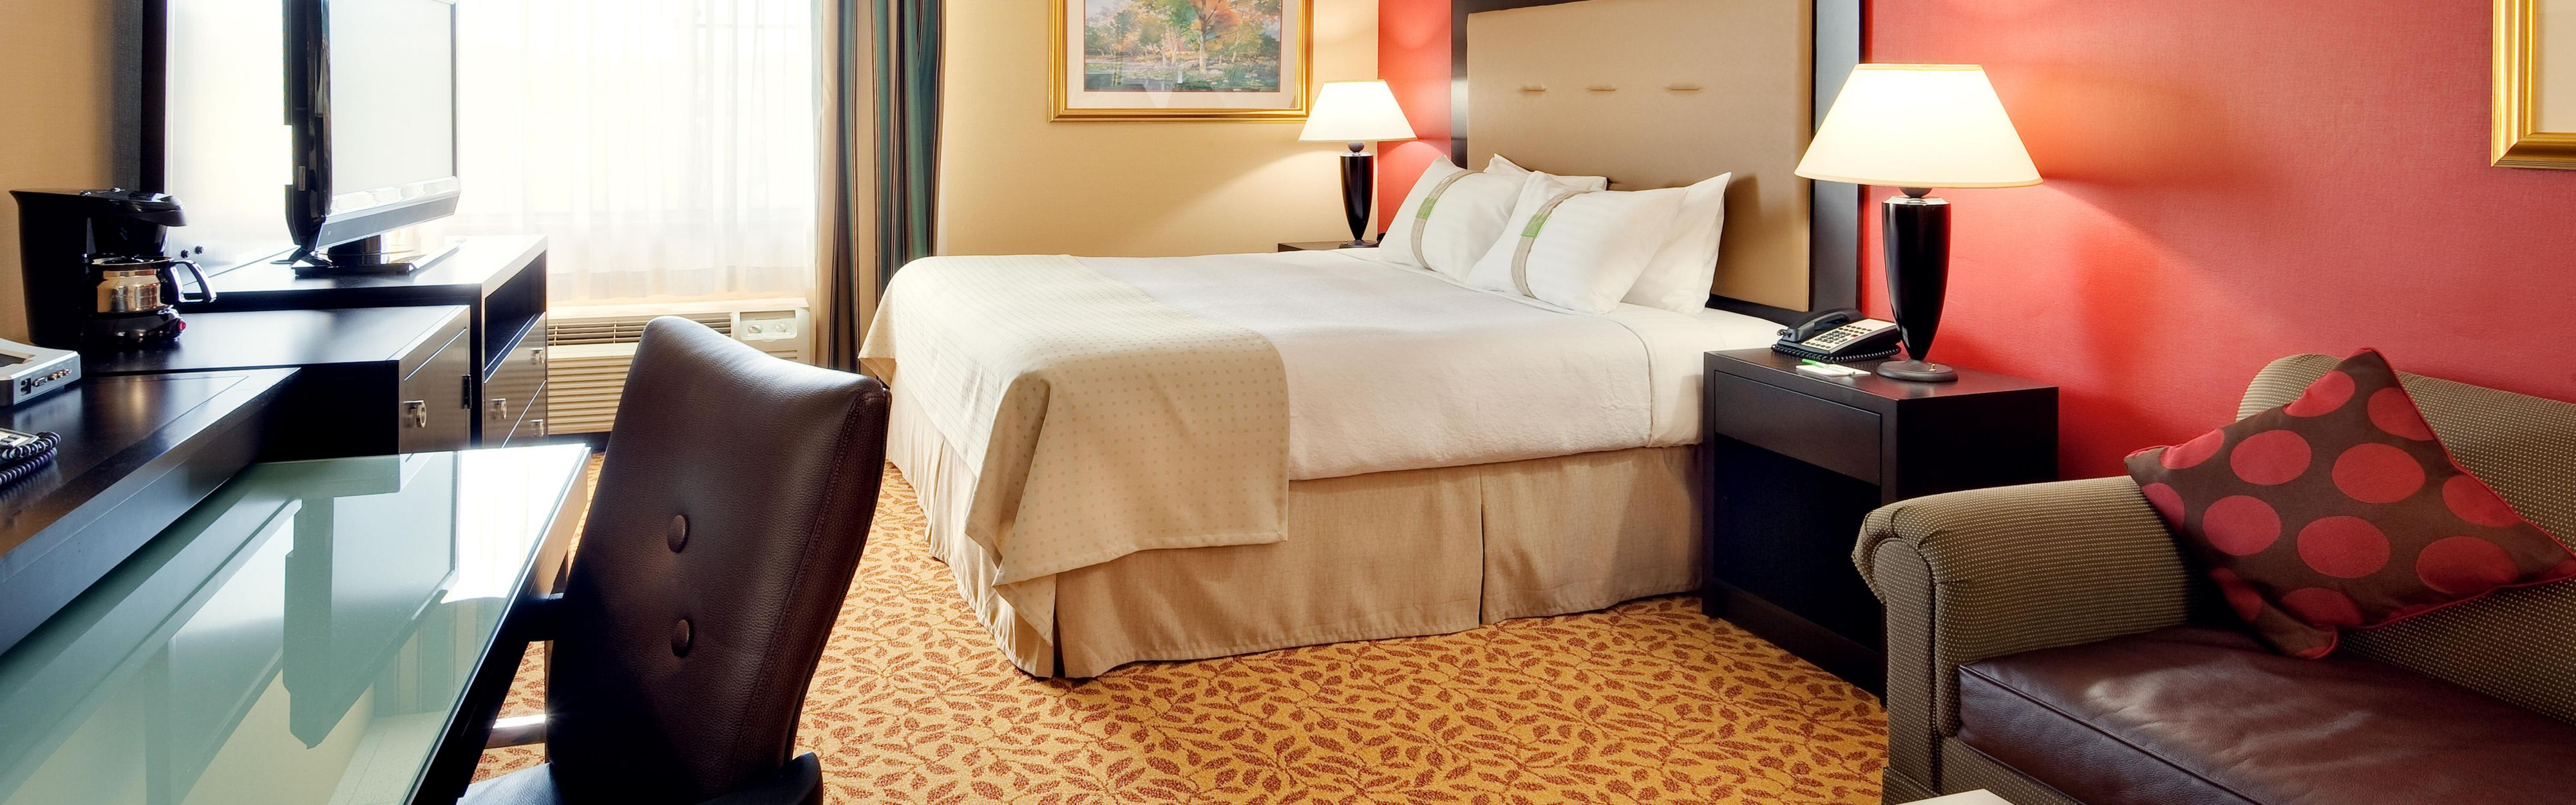 Holiday Inn Allentown-I-78 (Lehigh Valley) image 1